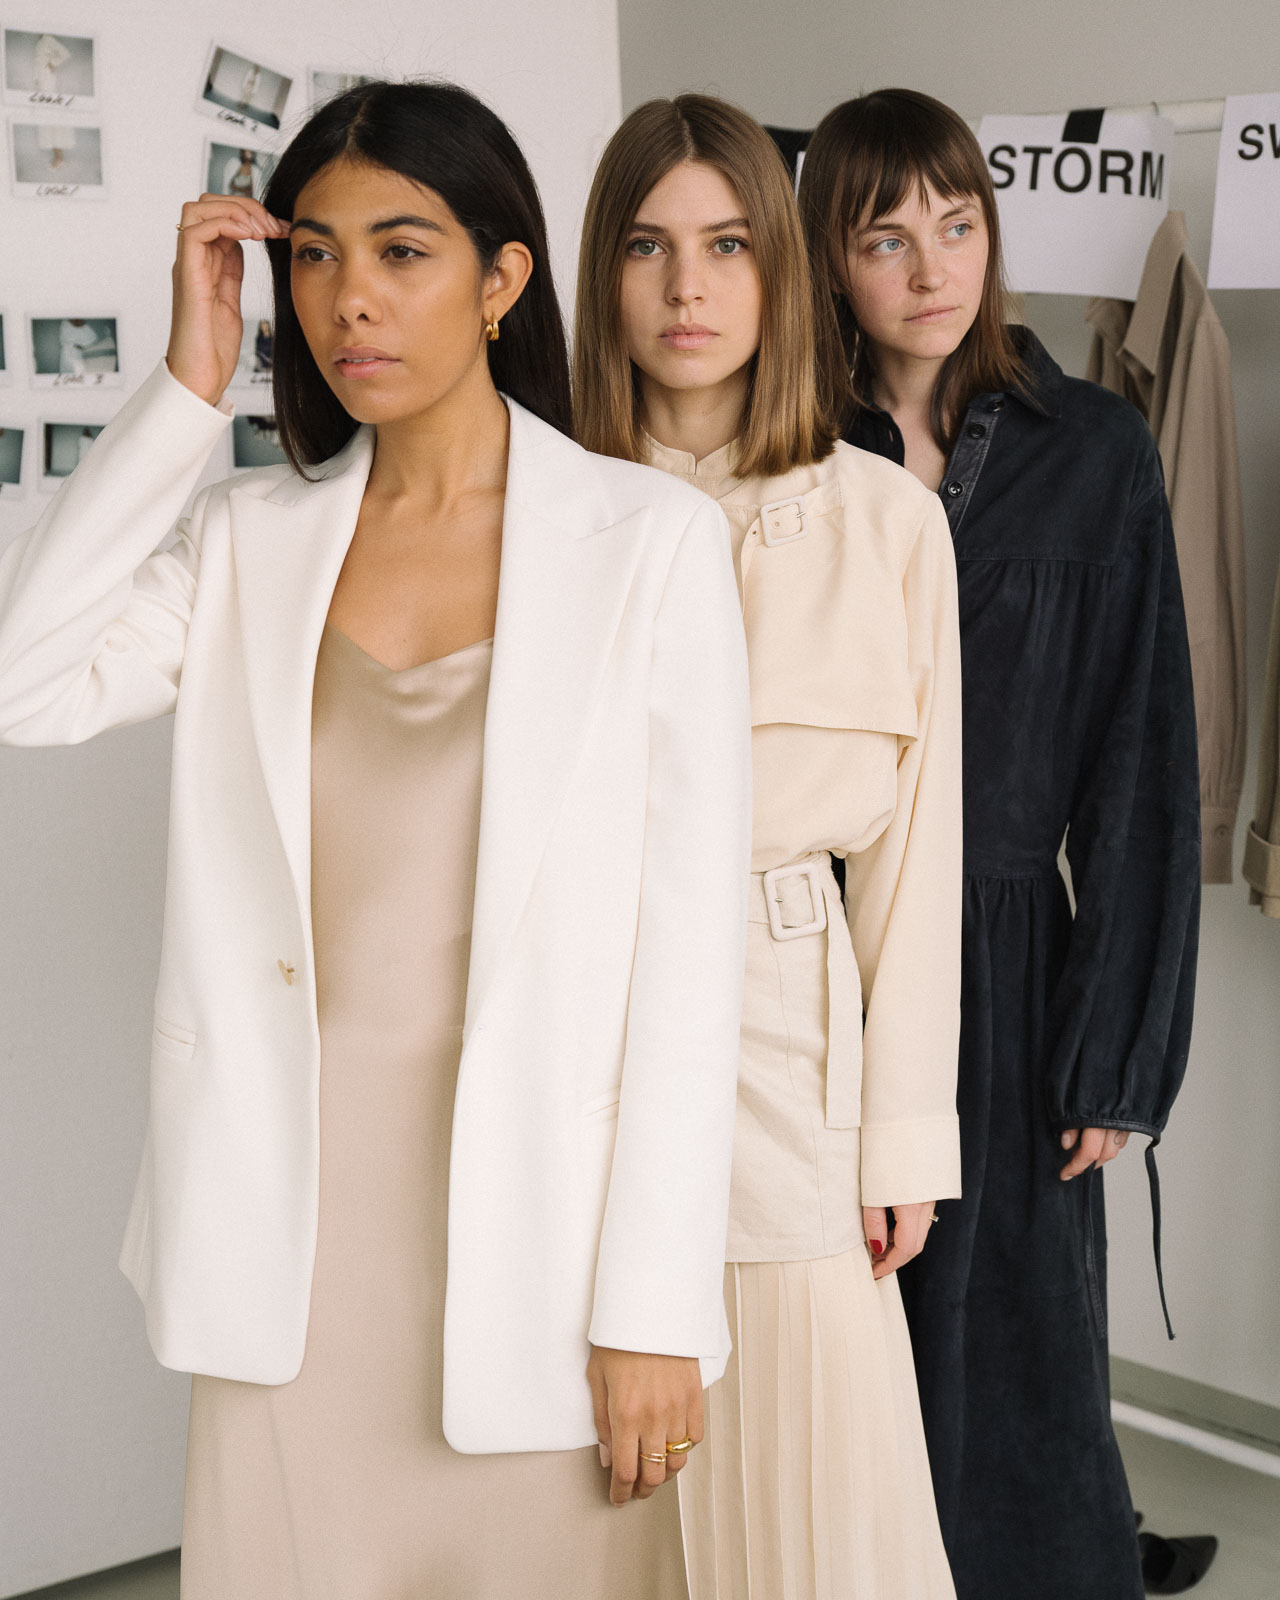 storm wears joseph SS19 Sommer collection with Trenton Jacket and Stone Silk Satin Dress, Swantje wears Tally Fuji Silk Blouse and Sissi Pohle wears Claudia Suede Dress